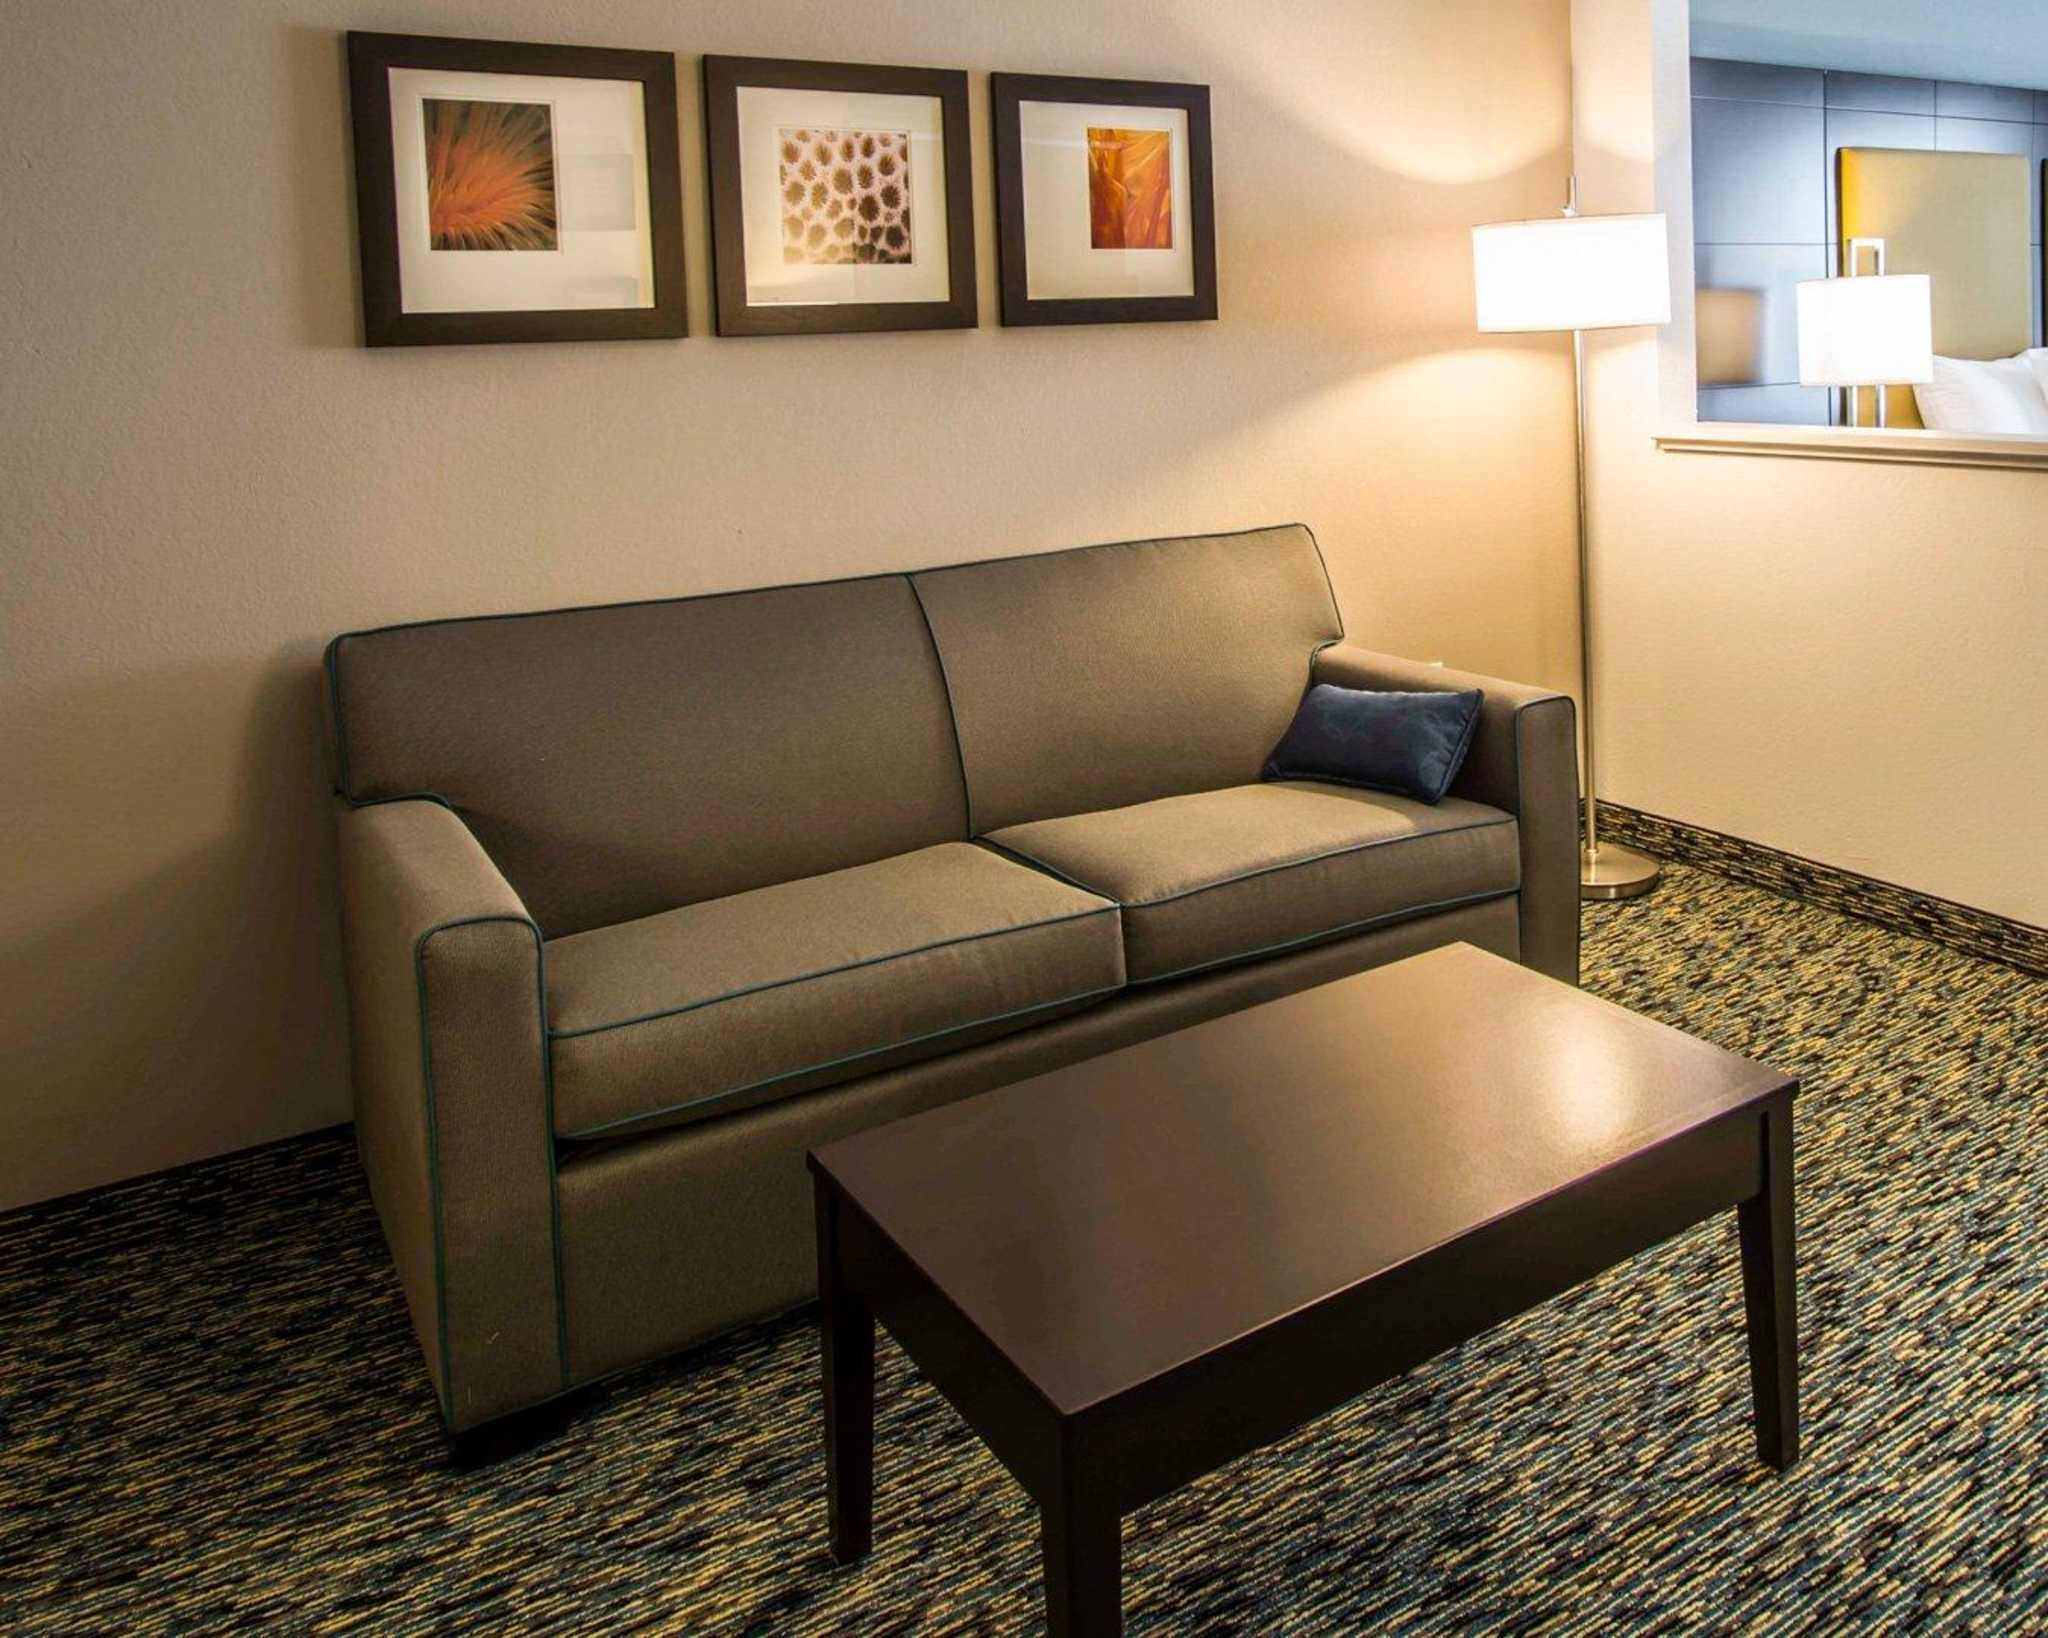 Comfort Suites Fort Lauderdale Airport South & Cruise Port image 19